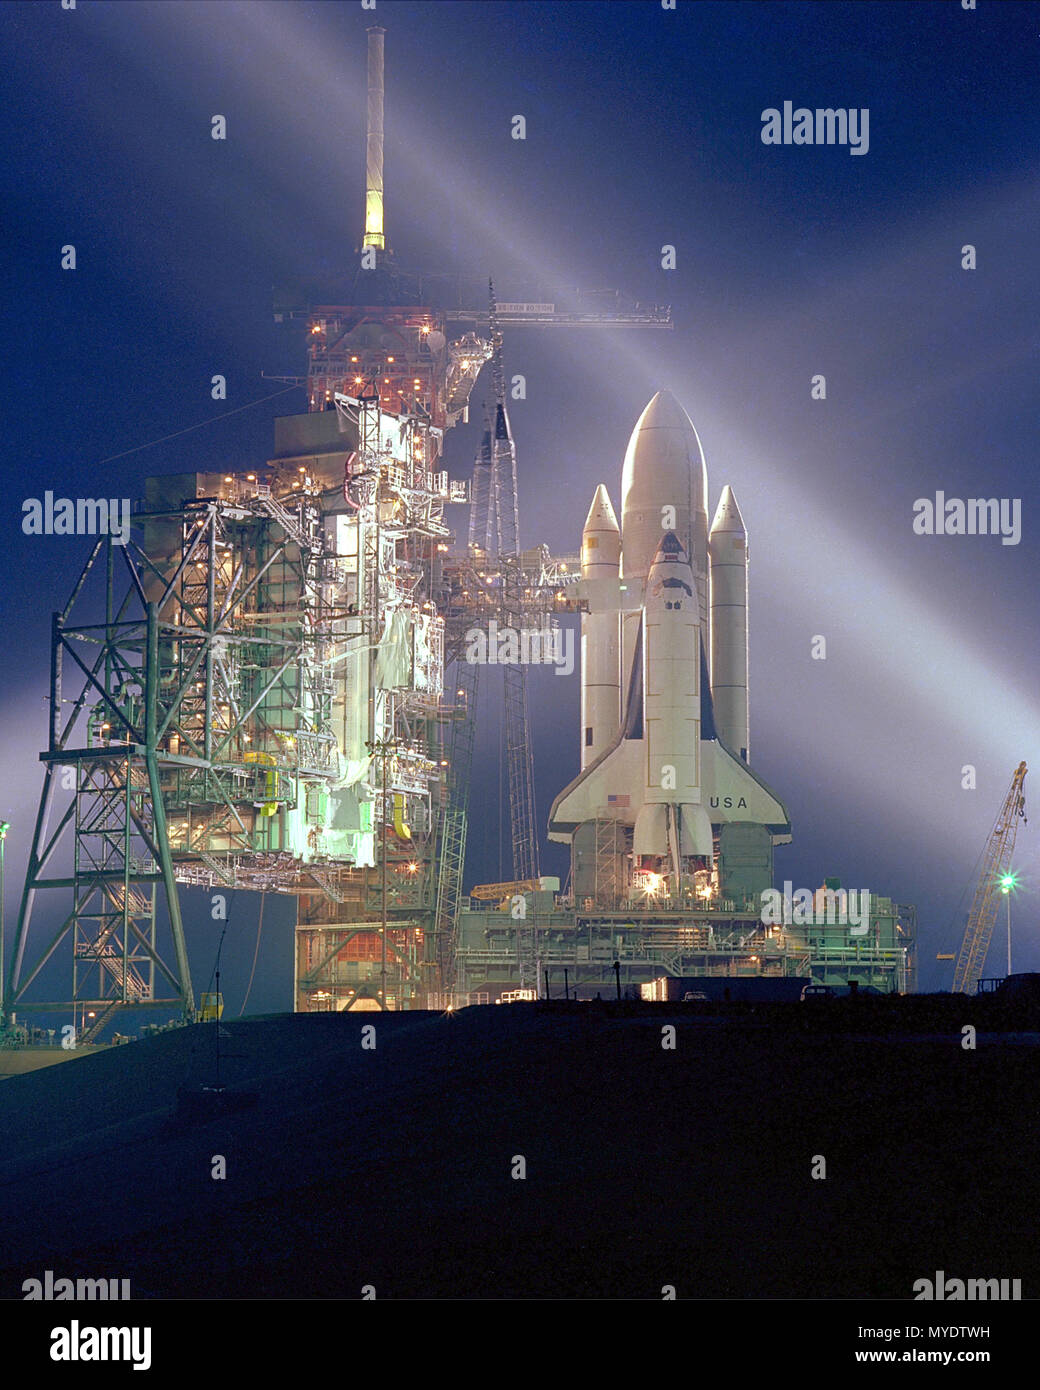 A timed exposure of the Space Shuttle, STS-1, at Launch Pad A, Complex 39, turns the space vehicle and support facilities into a night- time fantasy of light. Structures to the left of the Shuttle are the fixed and the rotating service structure. - Stock Image